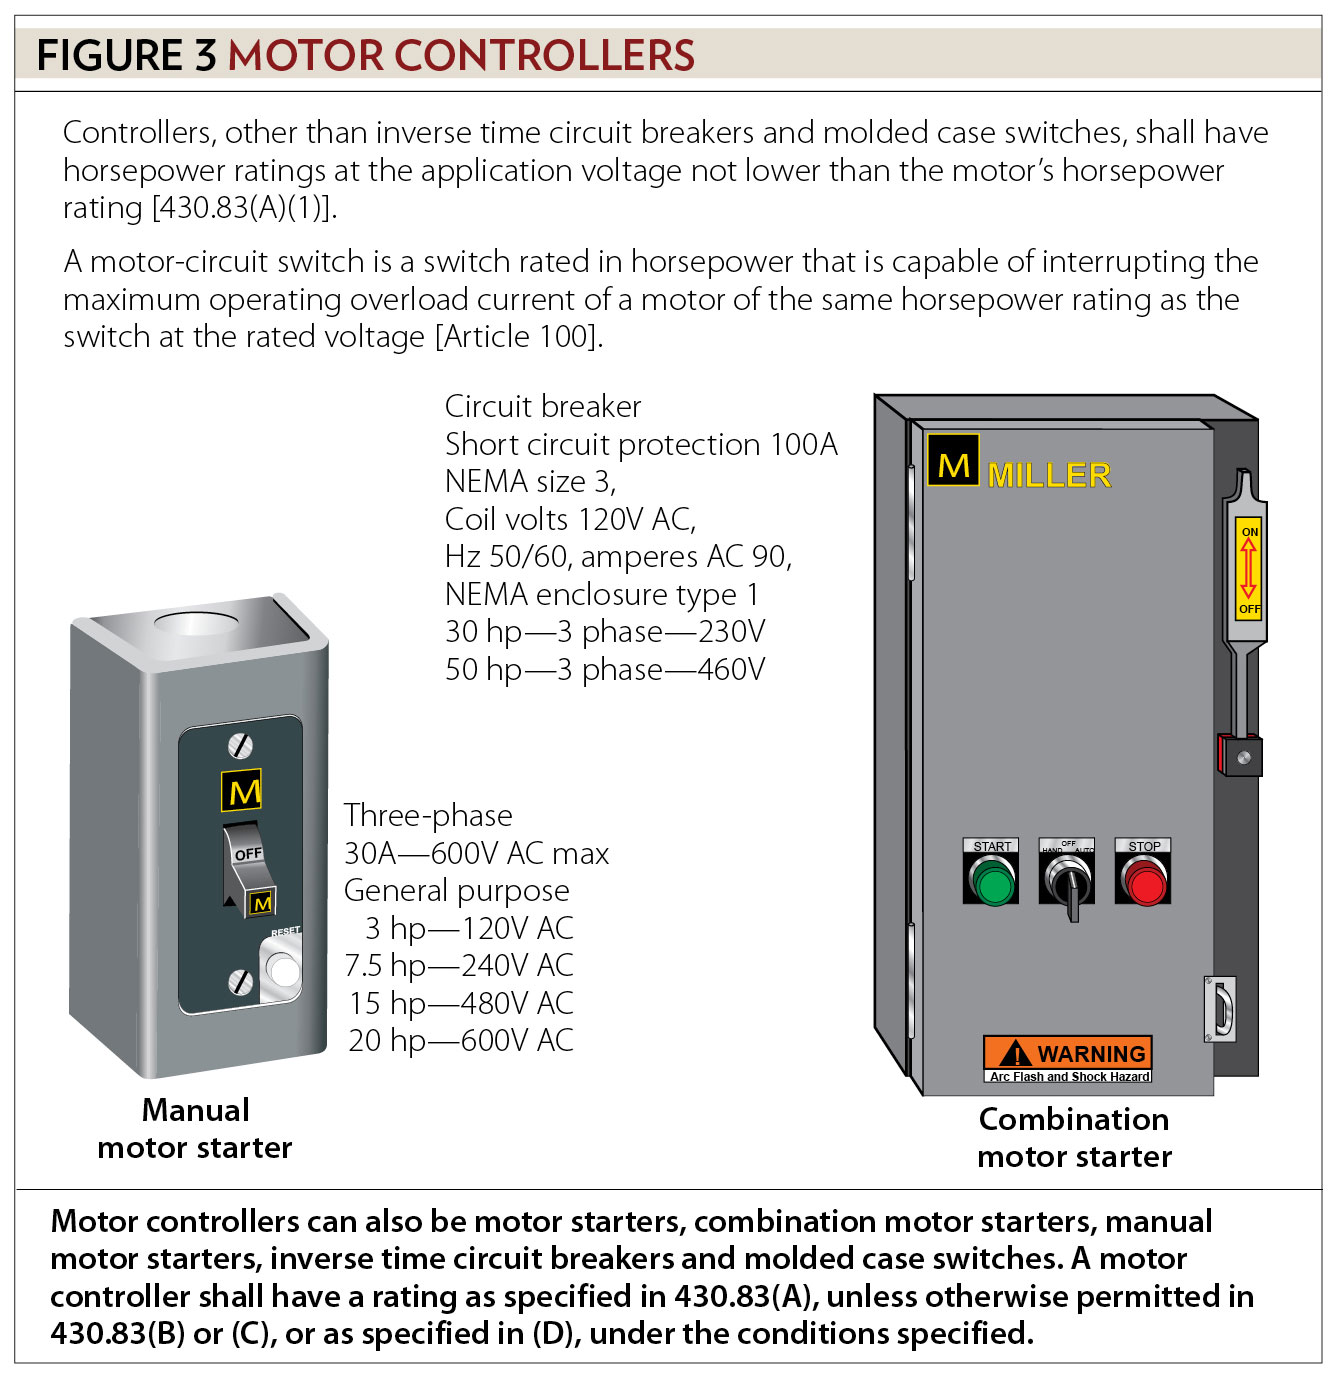 Motors Motor Circuits And Controllers Part Ii Article 430 Circuit Breaker For Power Distribution Figure 3